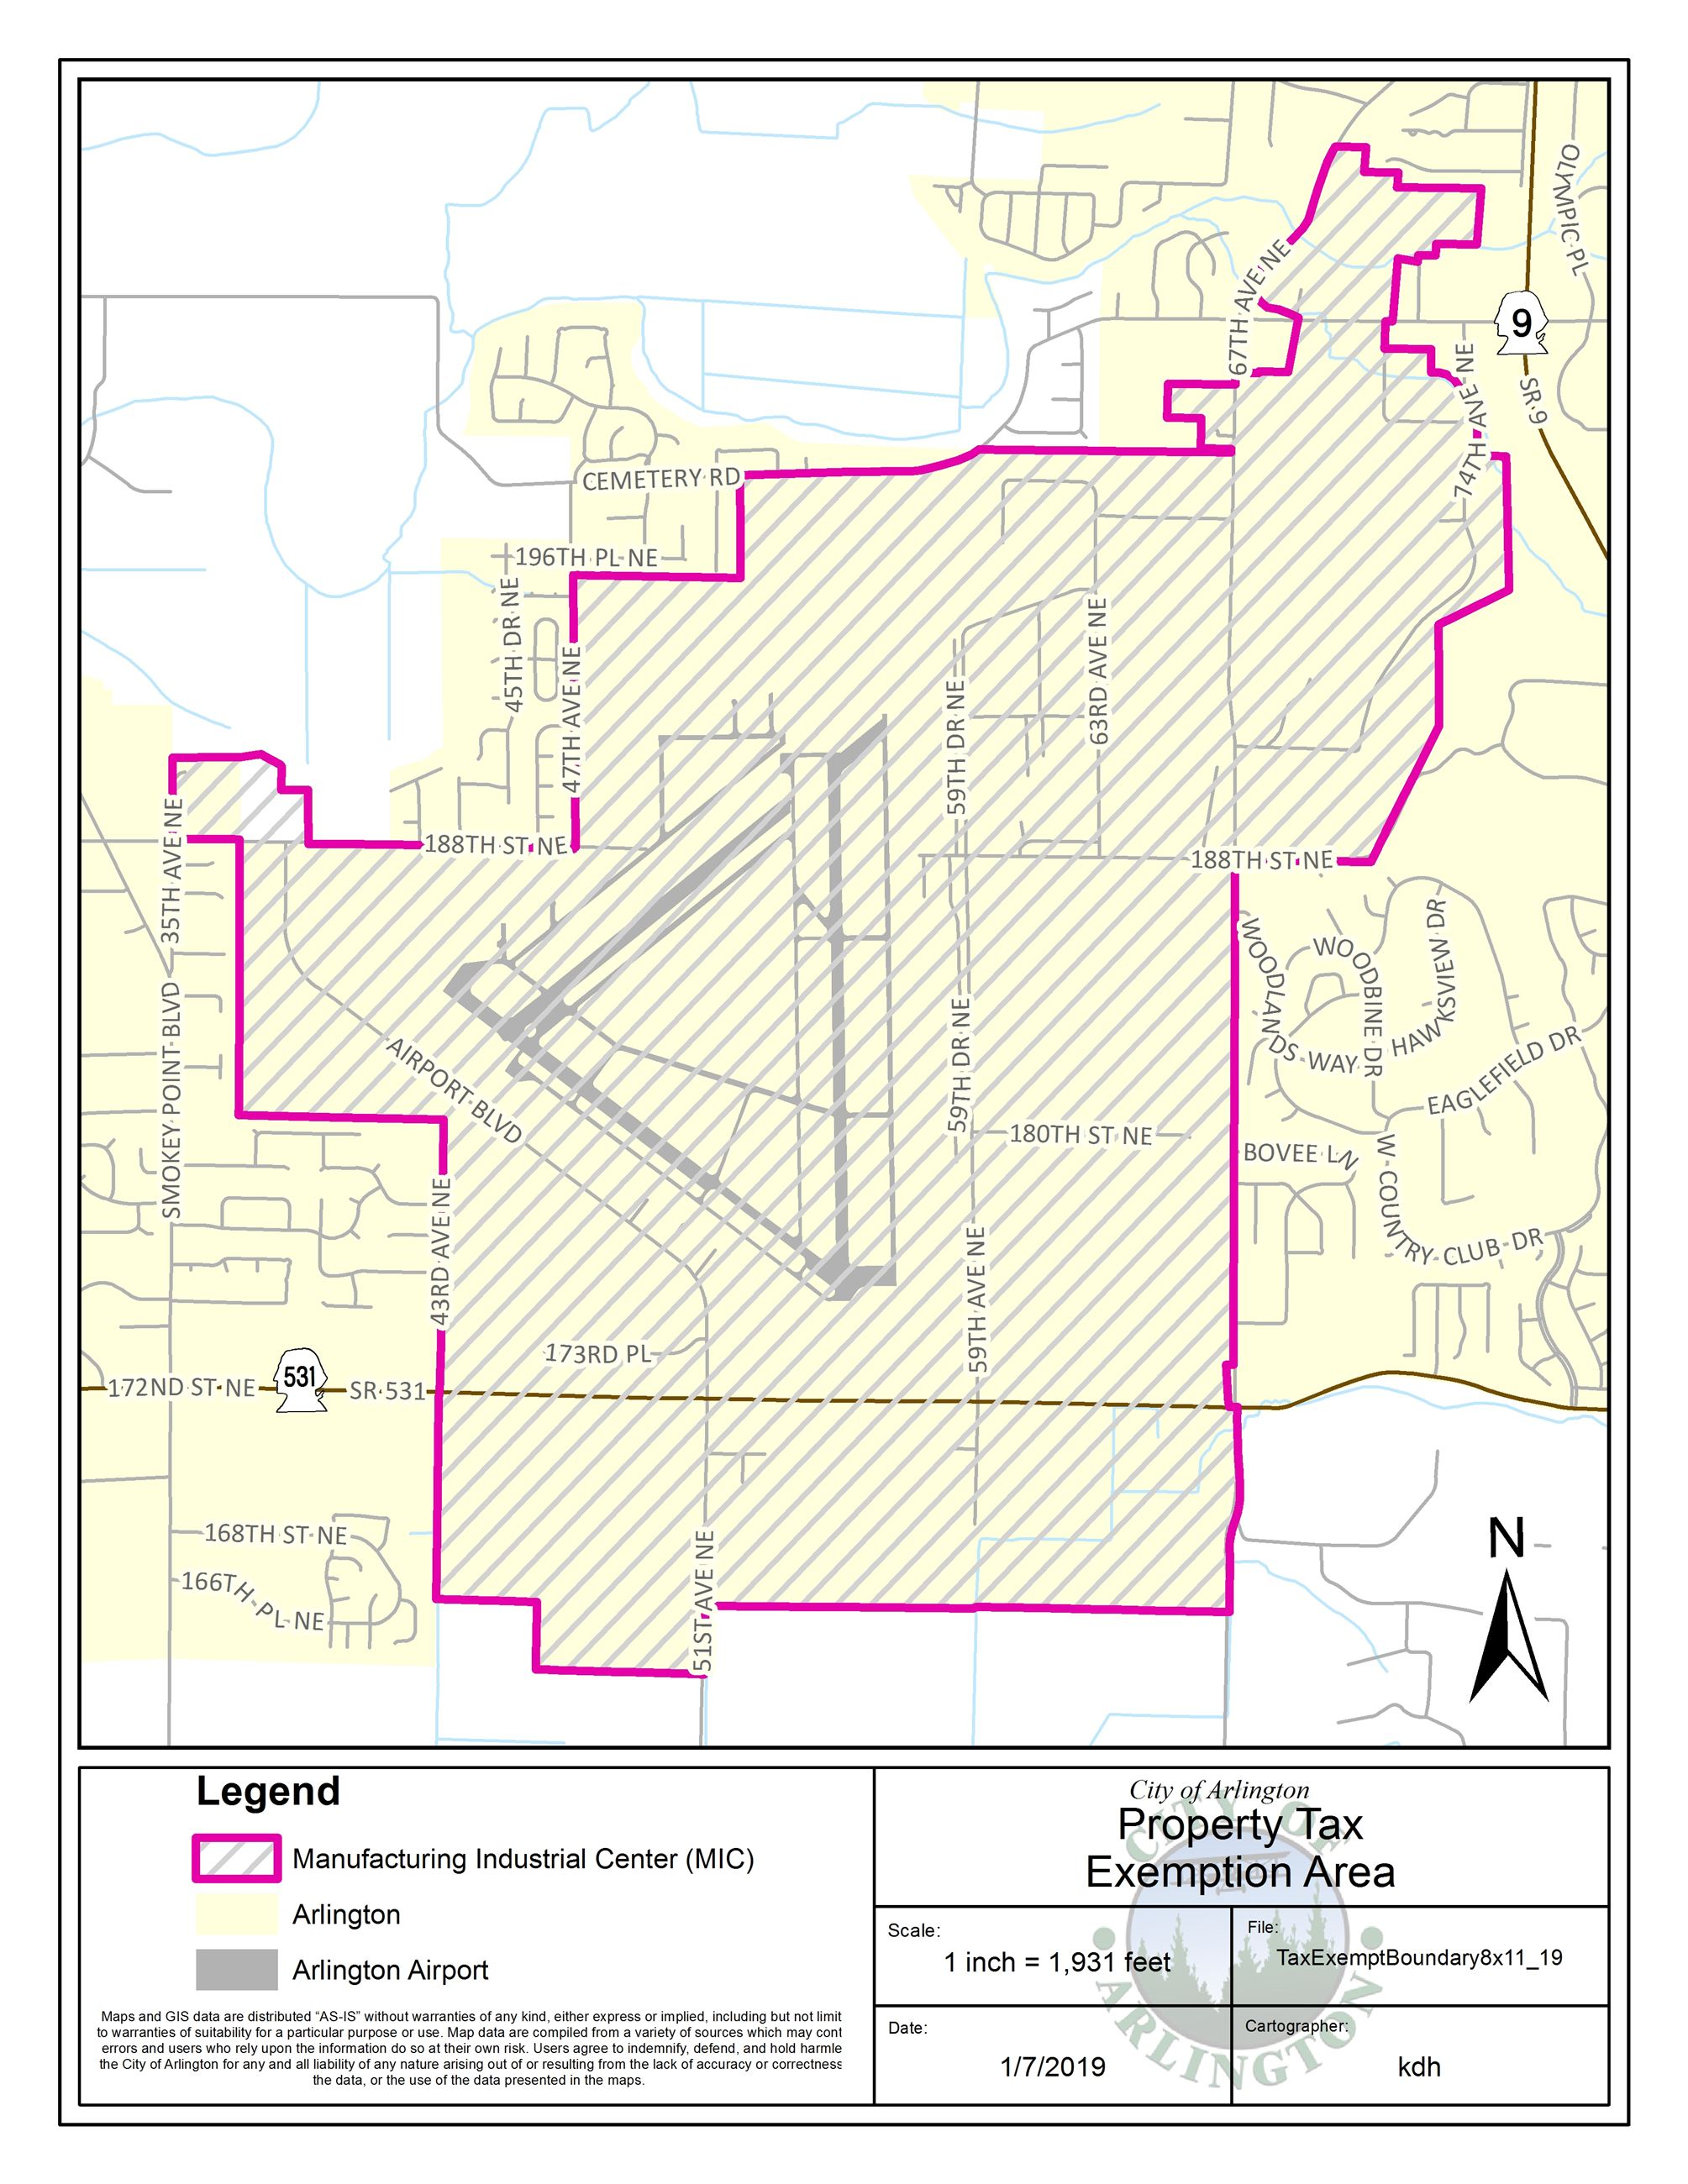 Map of area qualifying for property tax exemption